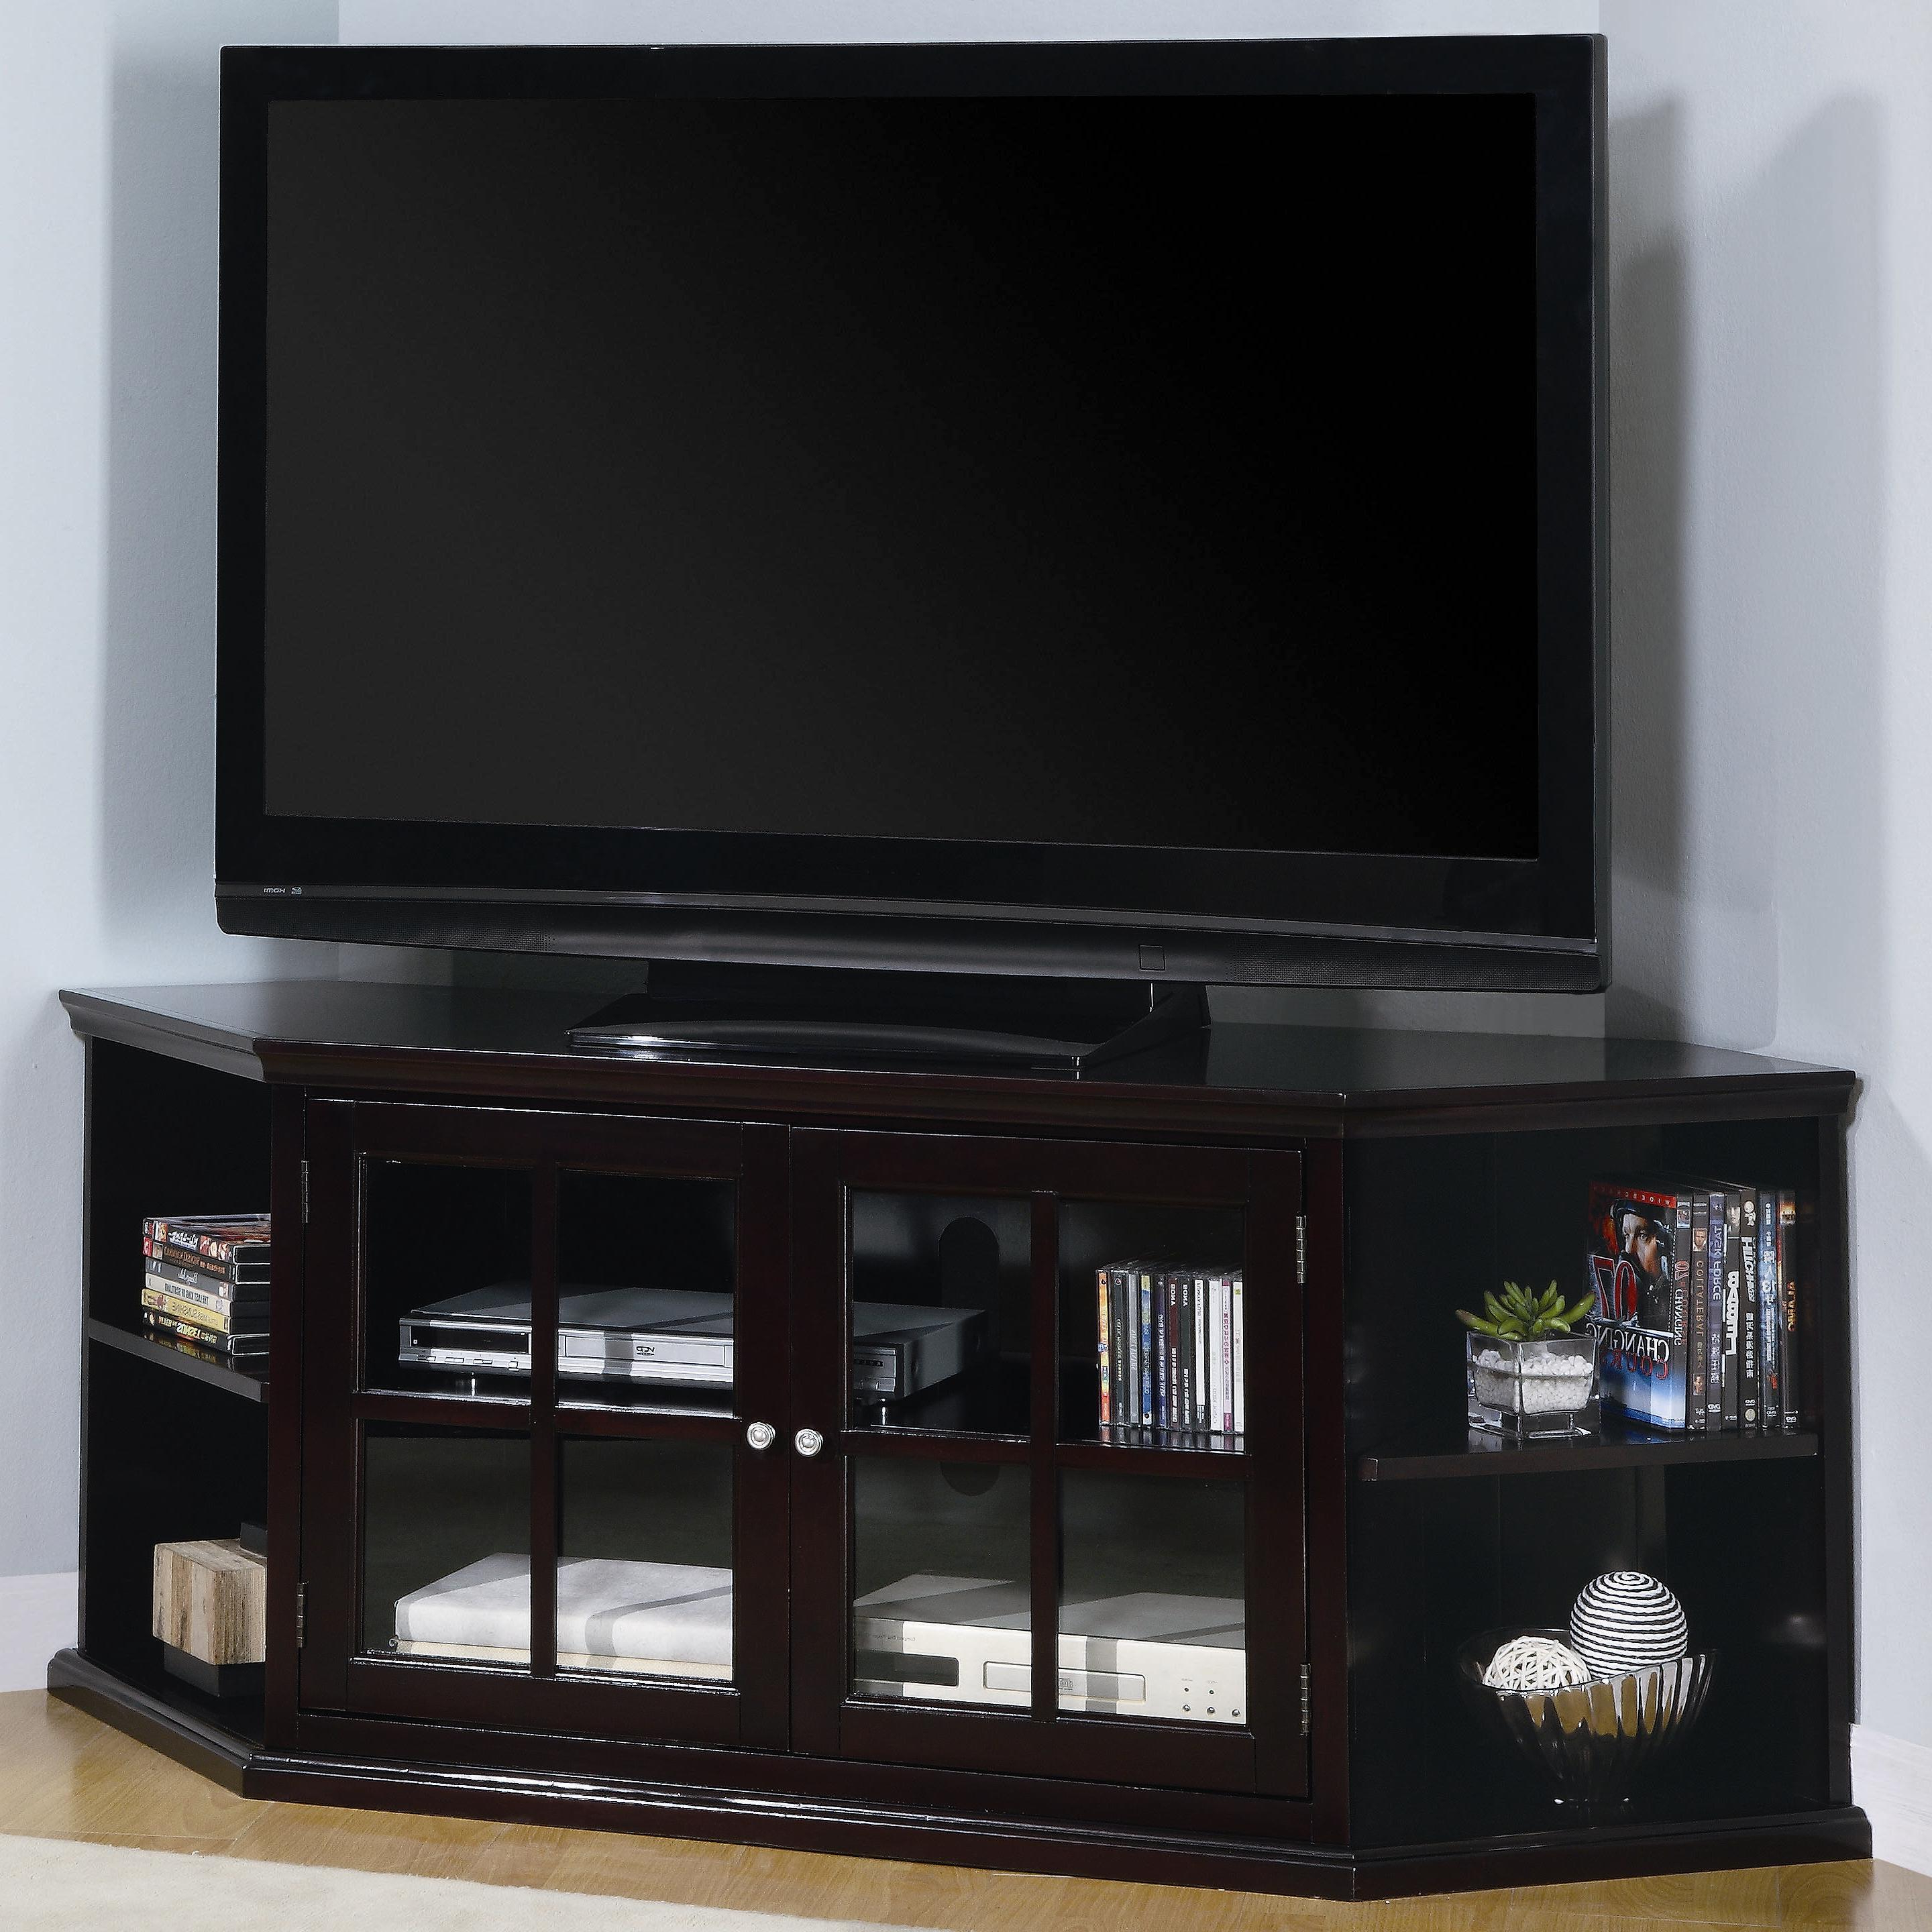 Recent Wood Tv Stand With Glass With Coaster Fullerton Transitional Corner Media Unit With Glass Doors (View 18 of 20)